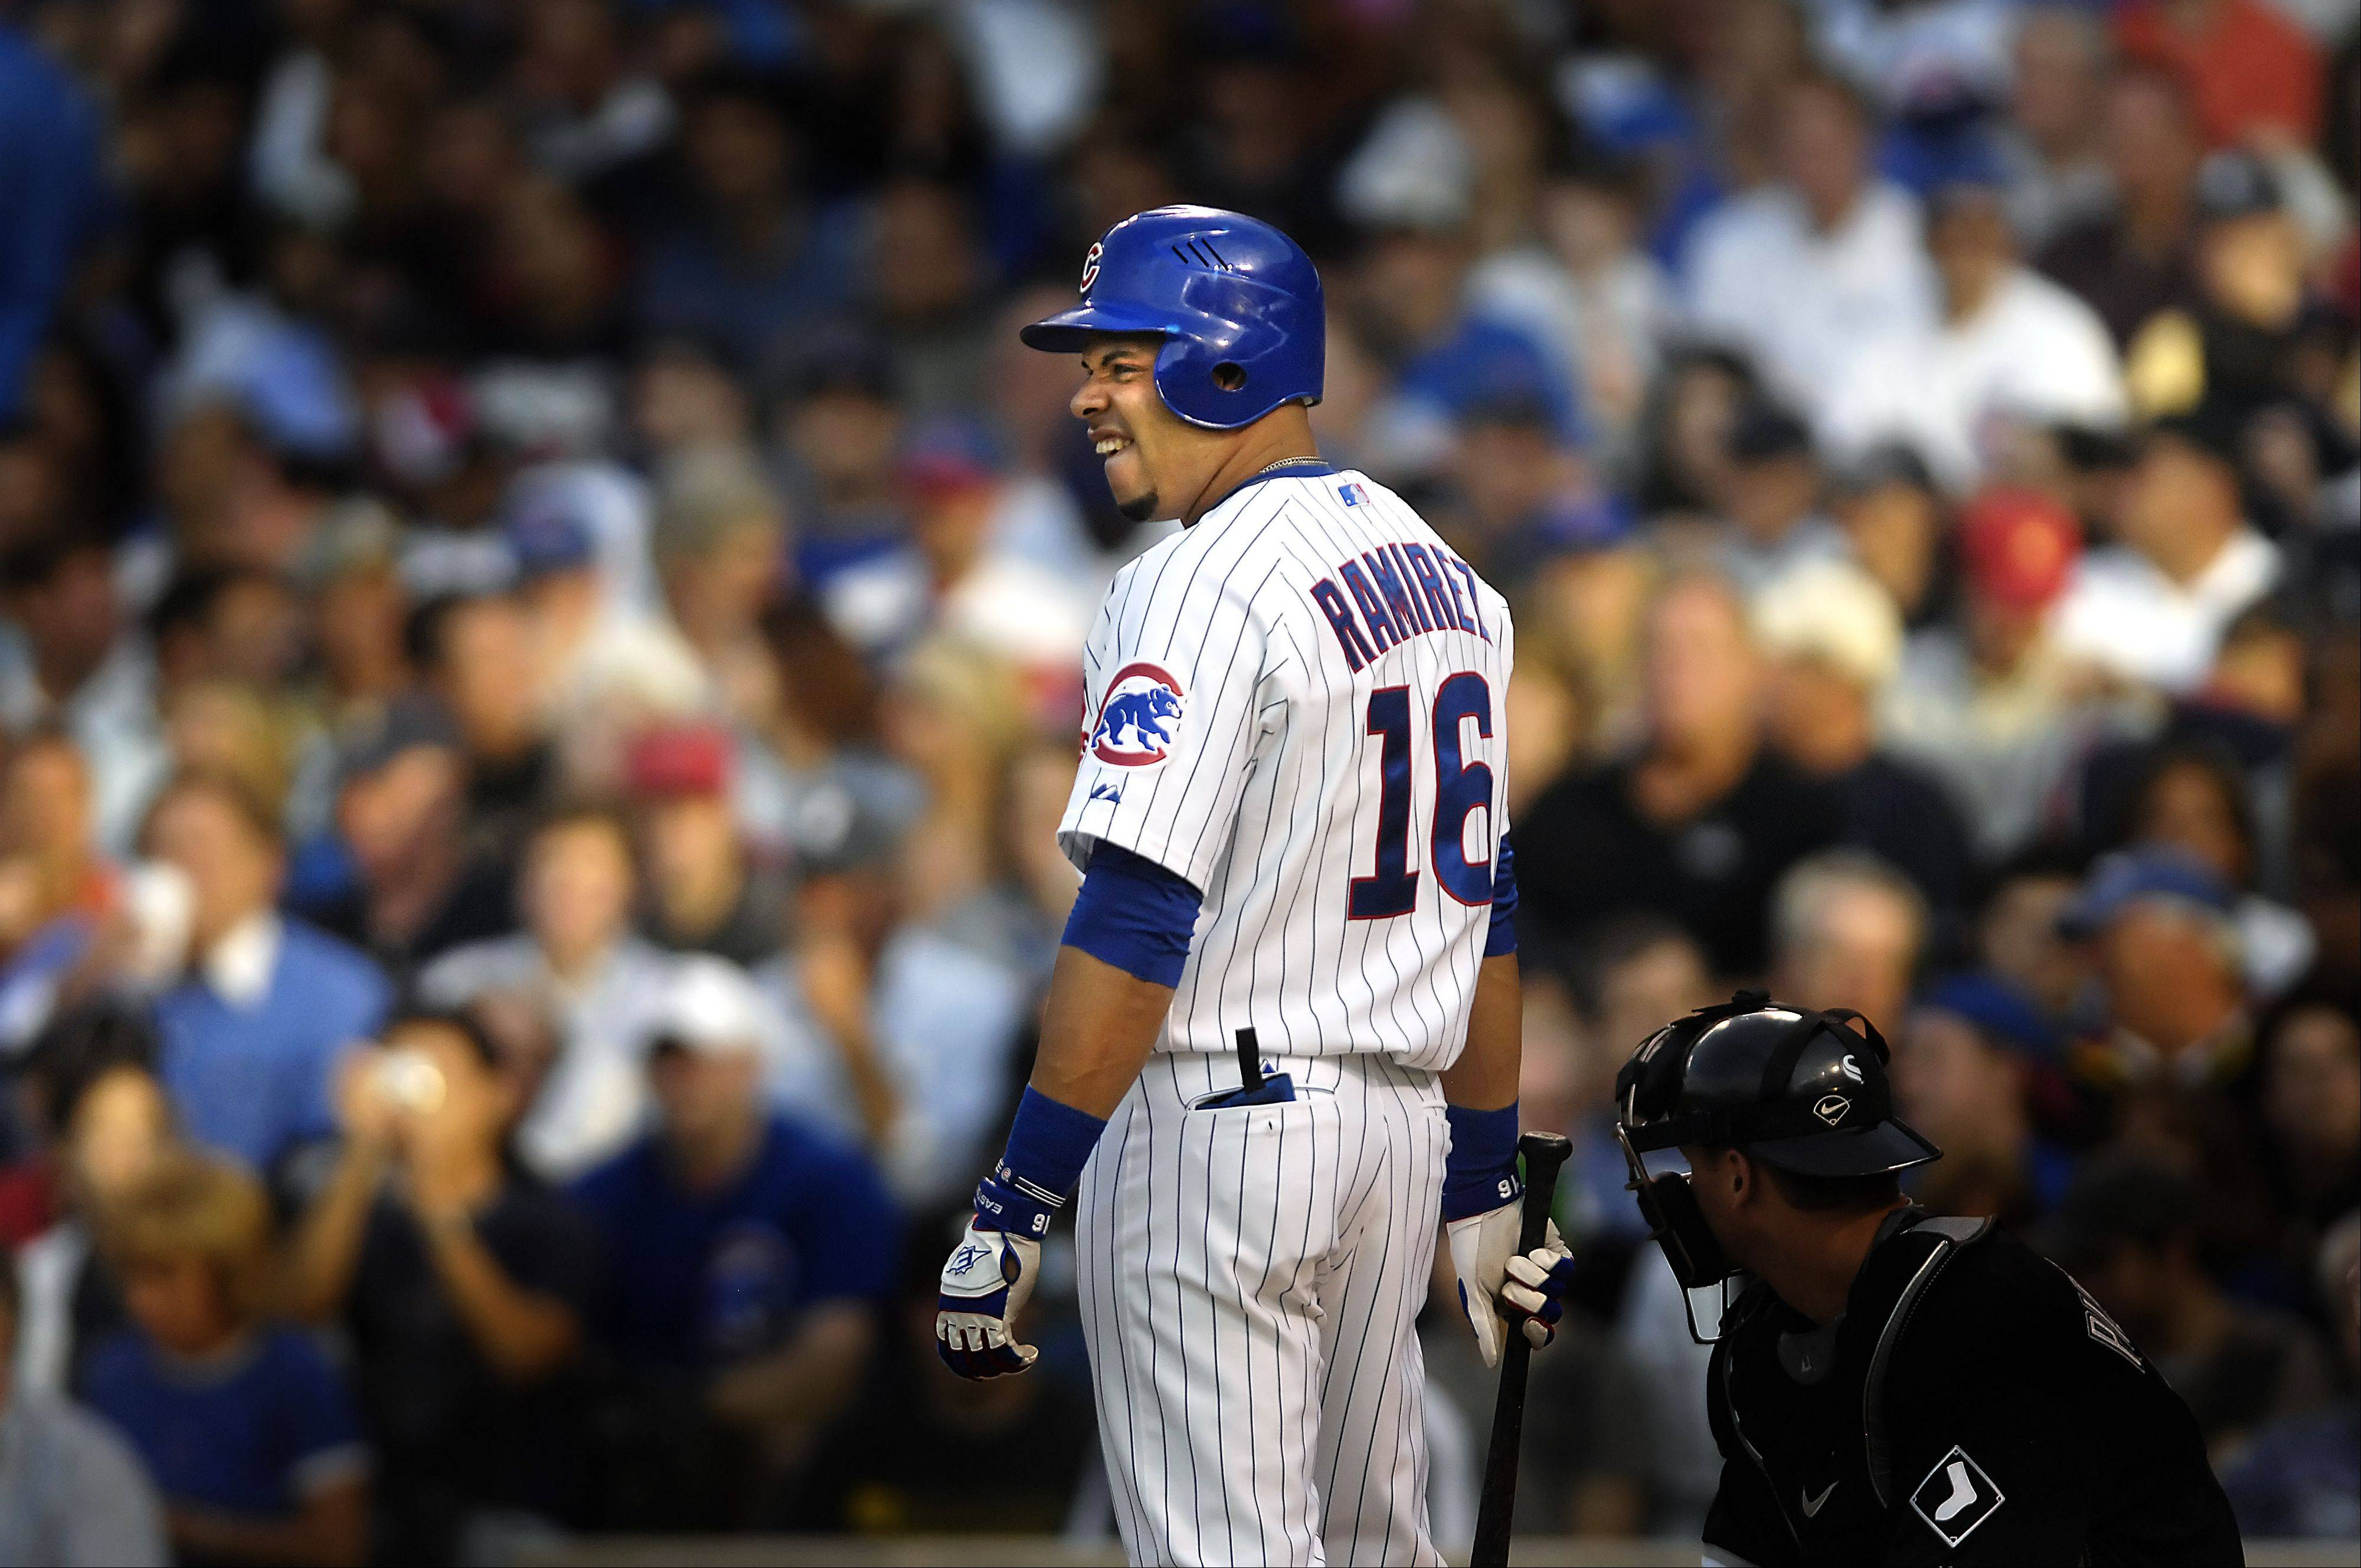 A streak of sunlight splashes the Wrigley Field crowd and Chicago Cubs slugger Aramis Ramirez seems to growl at the mound as he comes to the batters box against the Chicago White Sox at Wrigley Field in 2008.